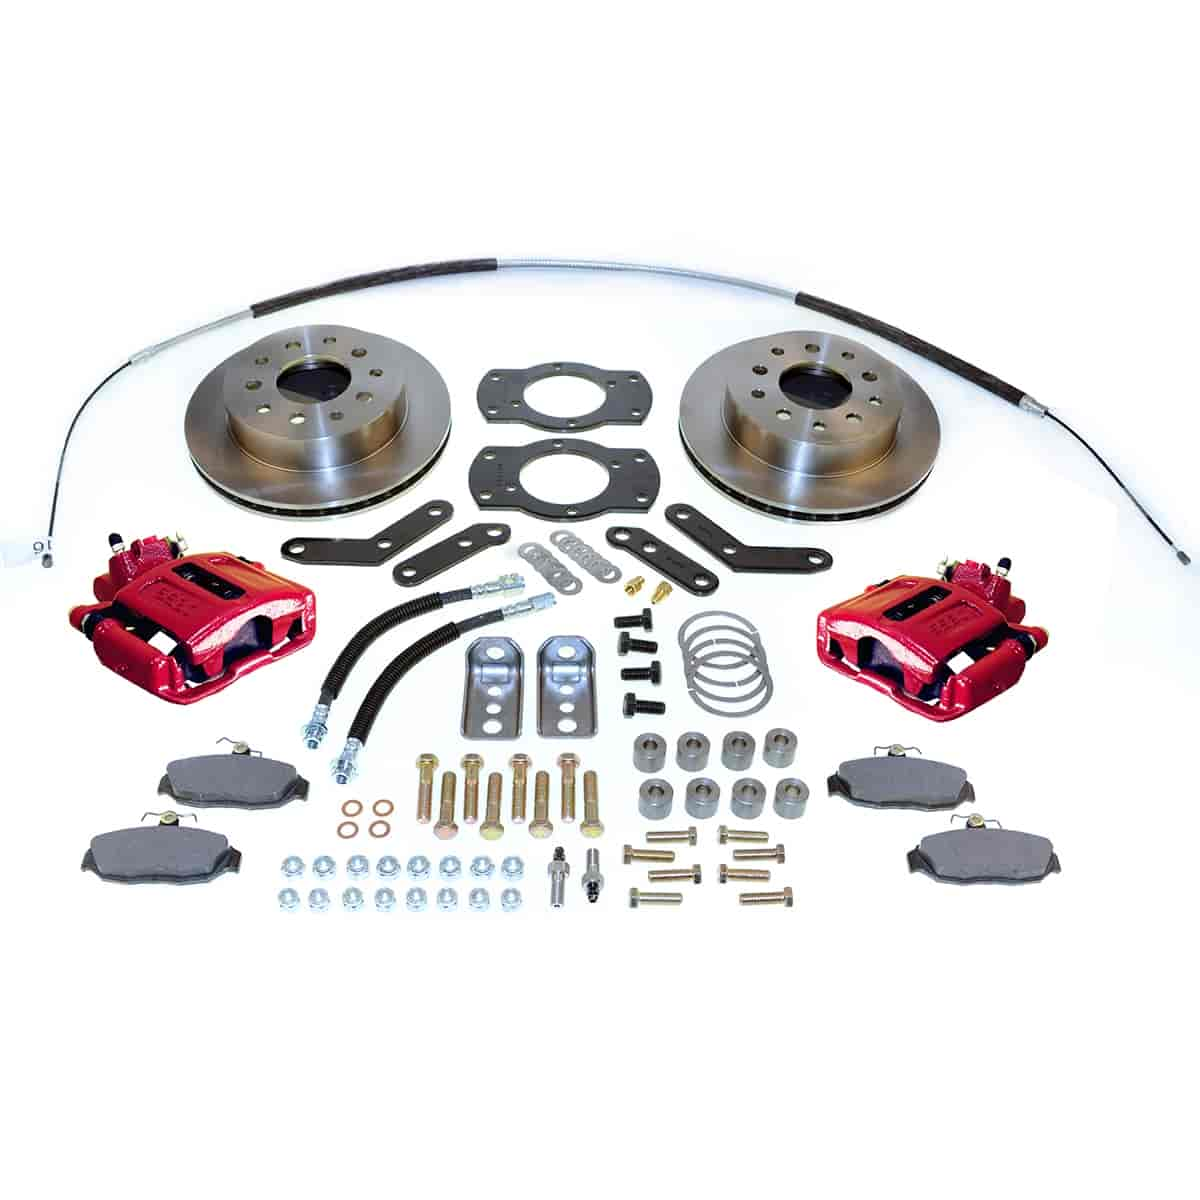 SSBC A125-1R - Stainless Steel Brakes Single Piston Rear Disc Brake Conversion Kit